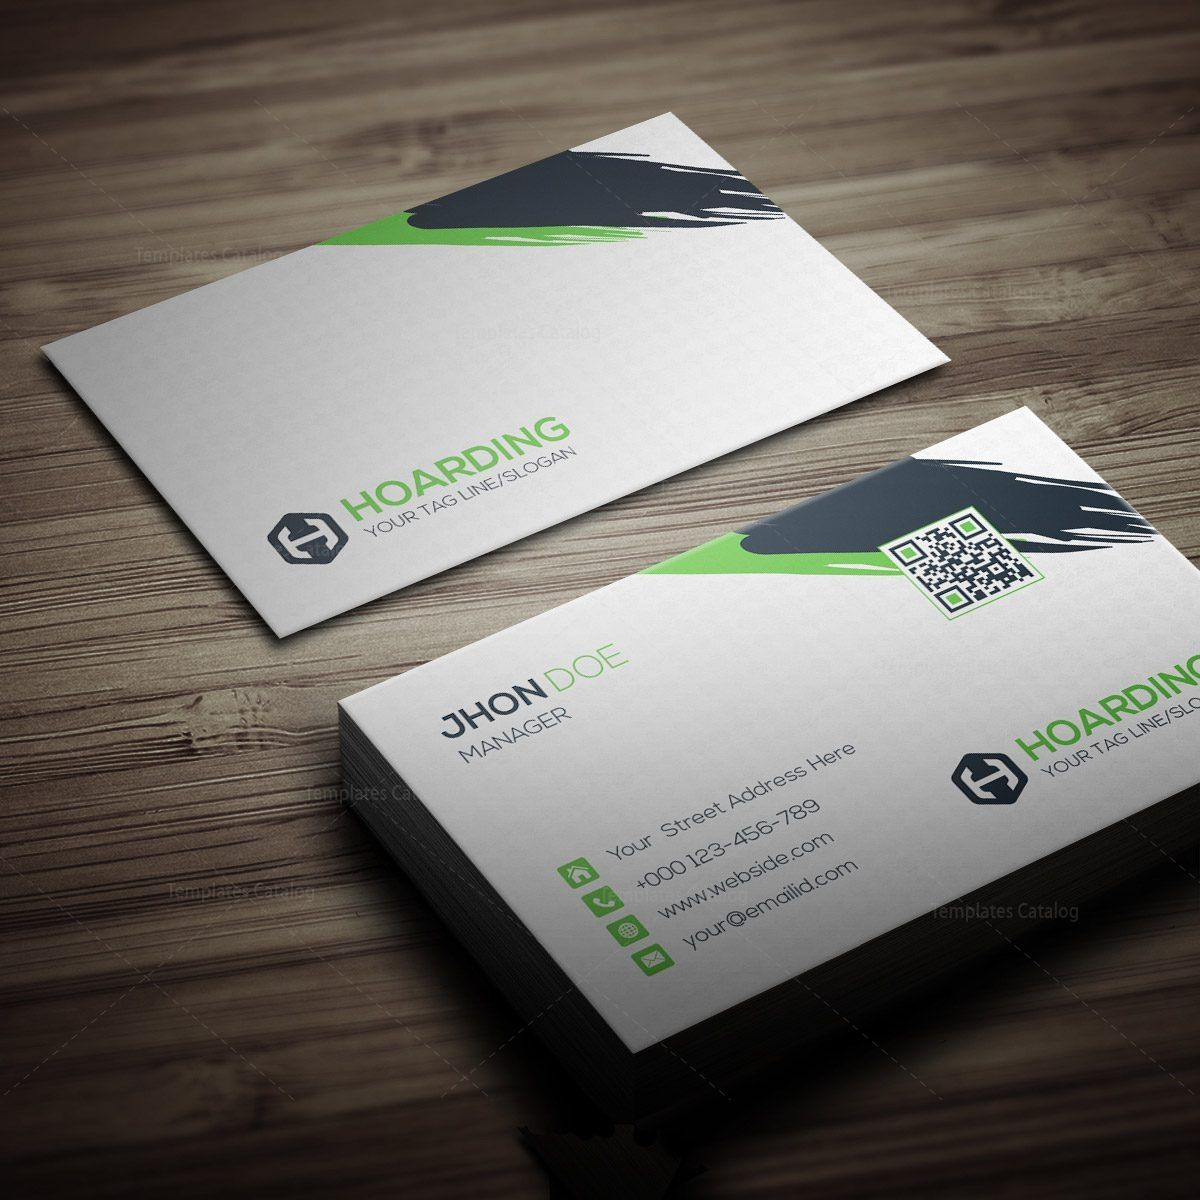 Stylish Hoarding Business Card Template 000264 Template Catalog Business Card Template Letterpress Business Cards Business Card Minimalist